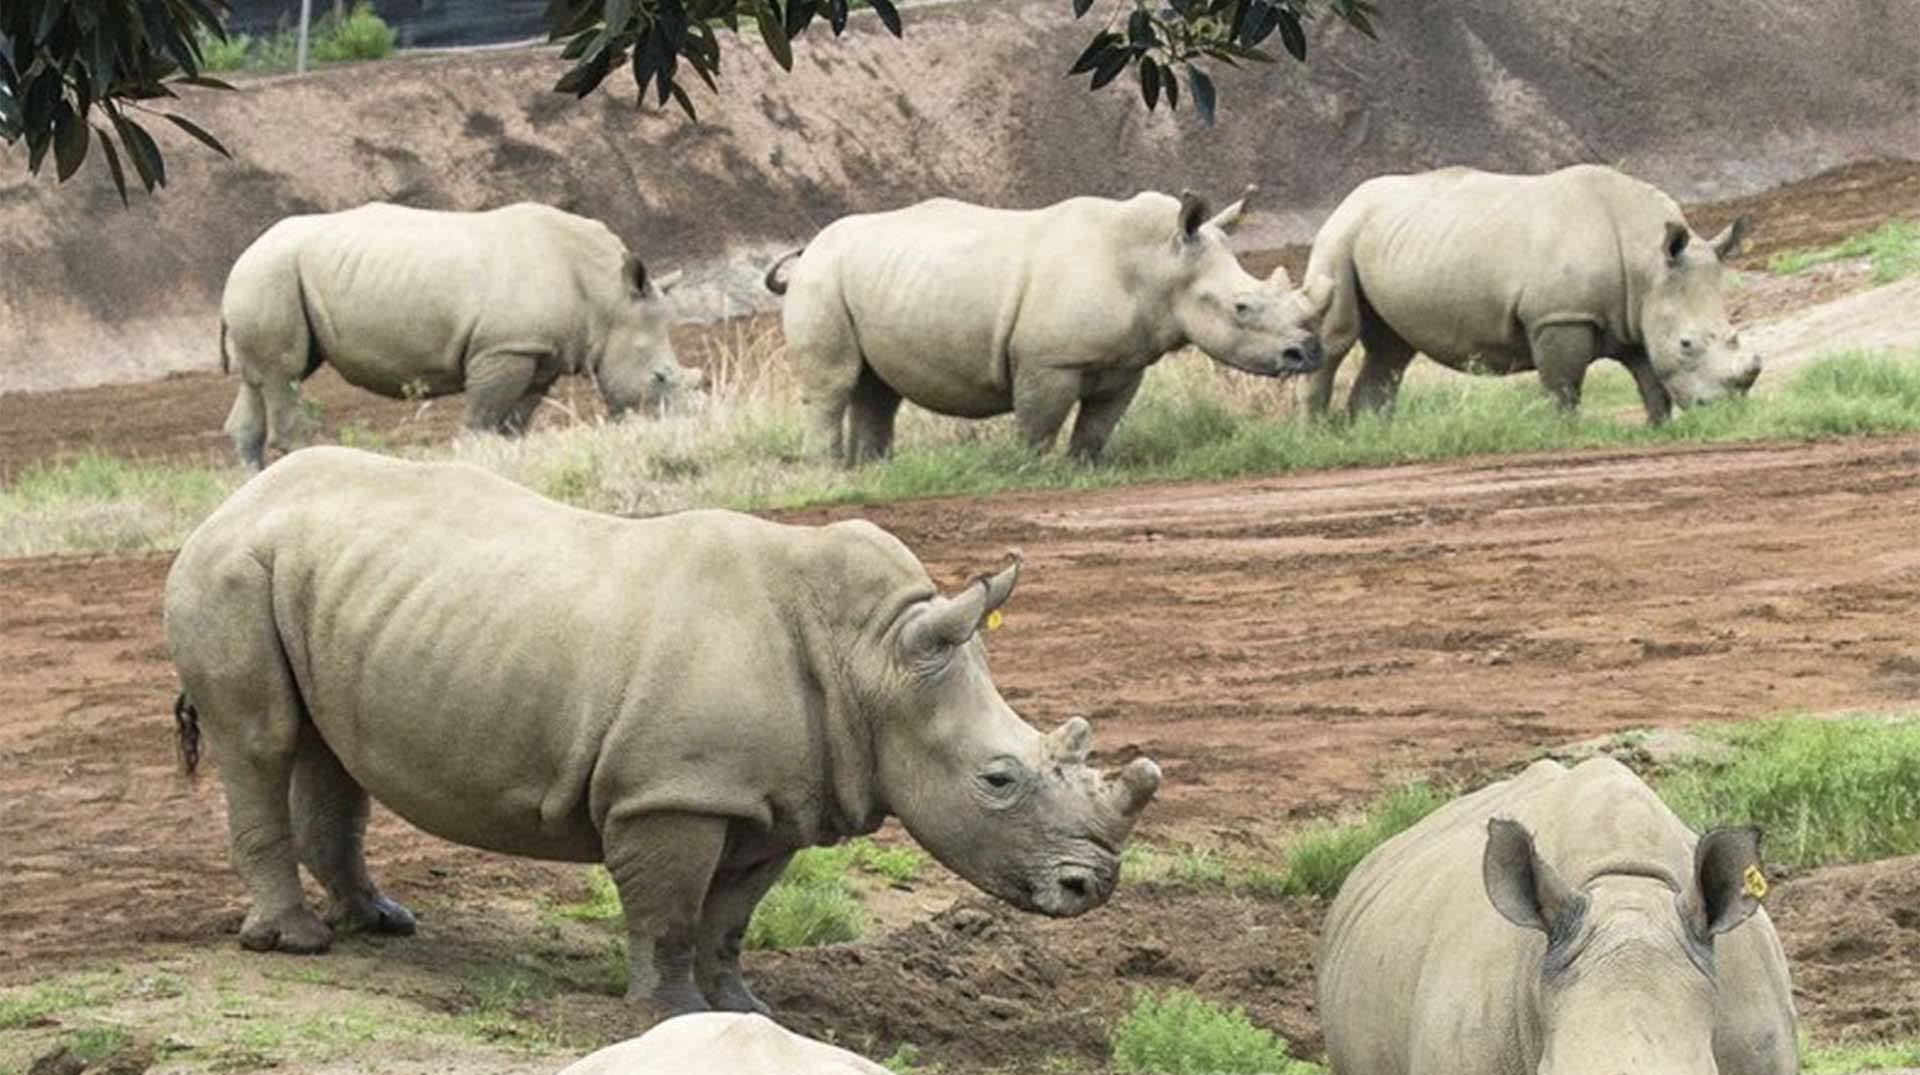 The district chairman, Sam Wadri Nyakua, has demanded that Uganda Wild Life Authority (UWA) returns the White Rhinos it took from Ajai wild life game reserve in Arua